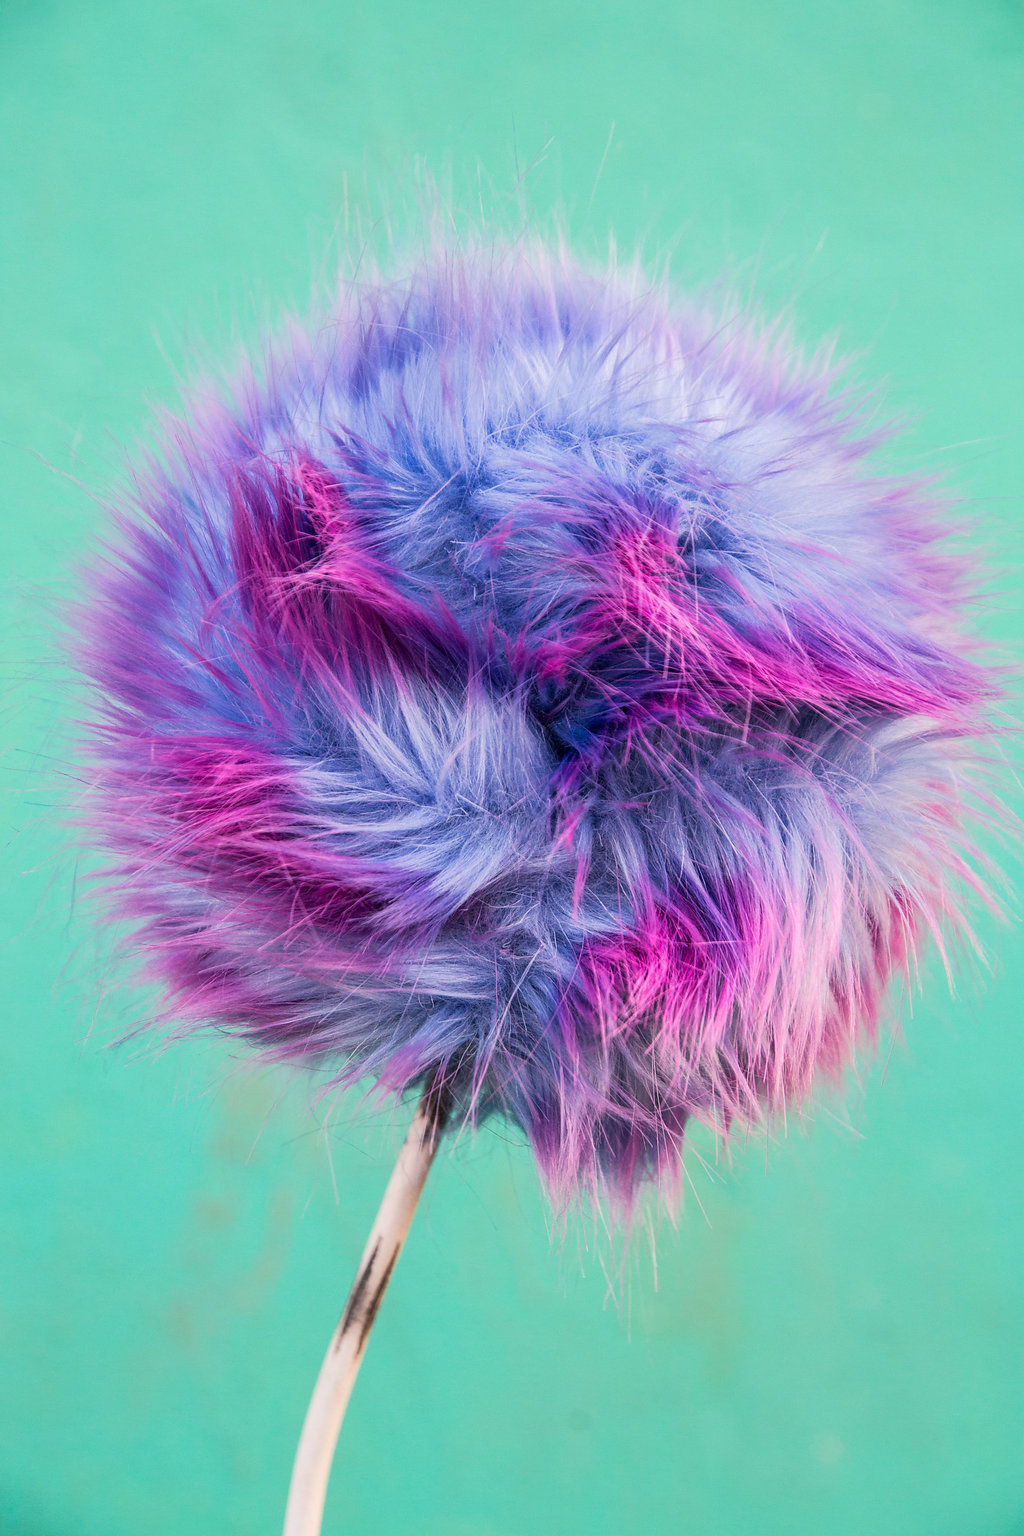 A pink and blue pom pom